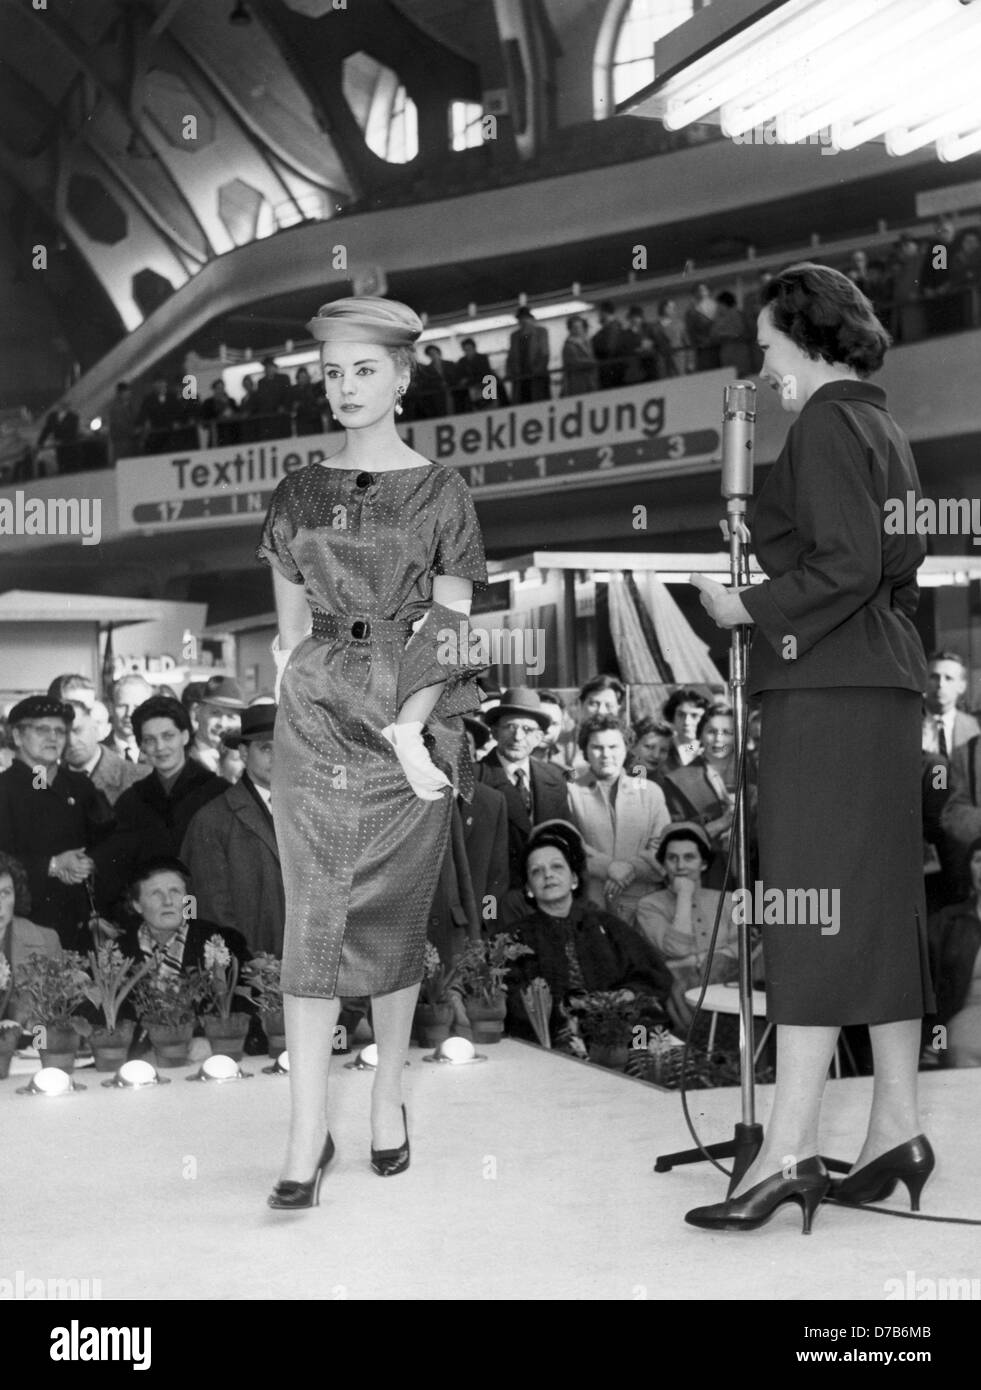 A model presents a dress made of new textiles from Farbwerke Hoechst at a fashion show during the spring fair in Frankfurt am Main on the 11th of March in 1957. Stock Photo